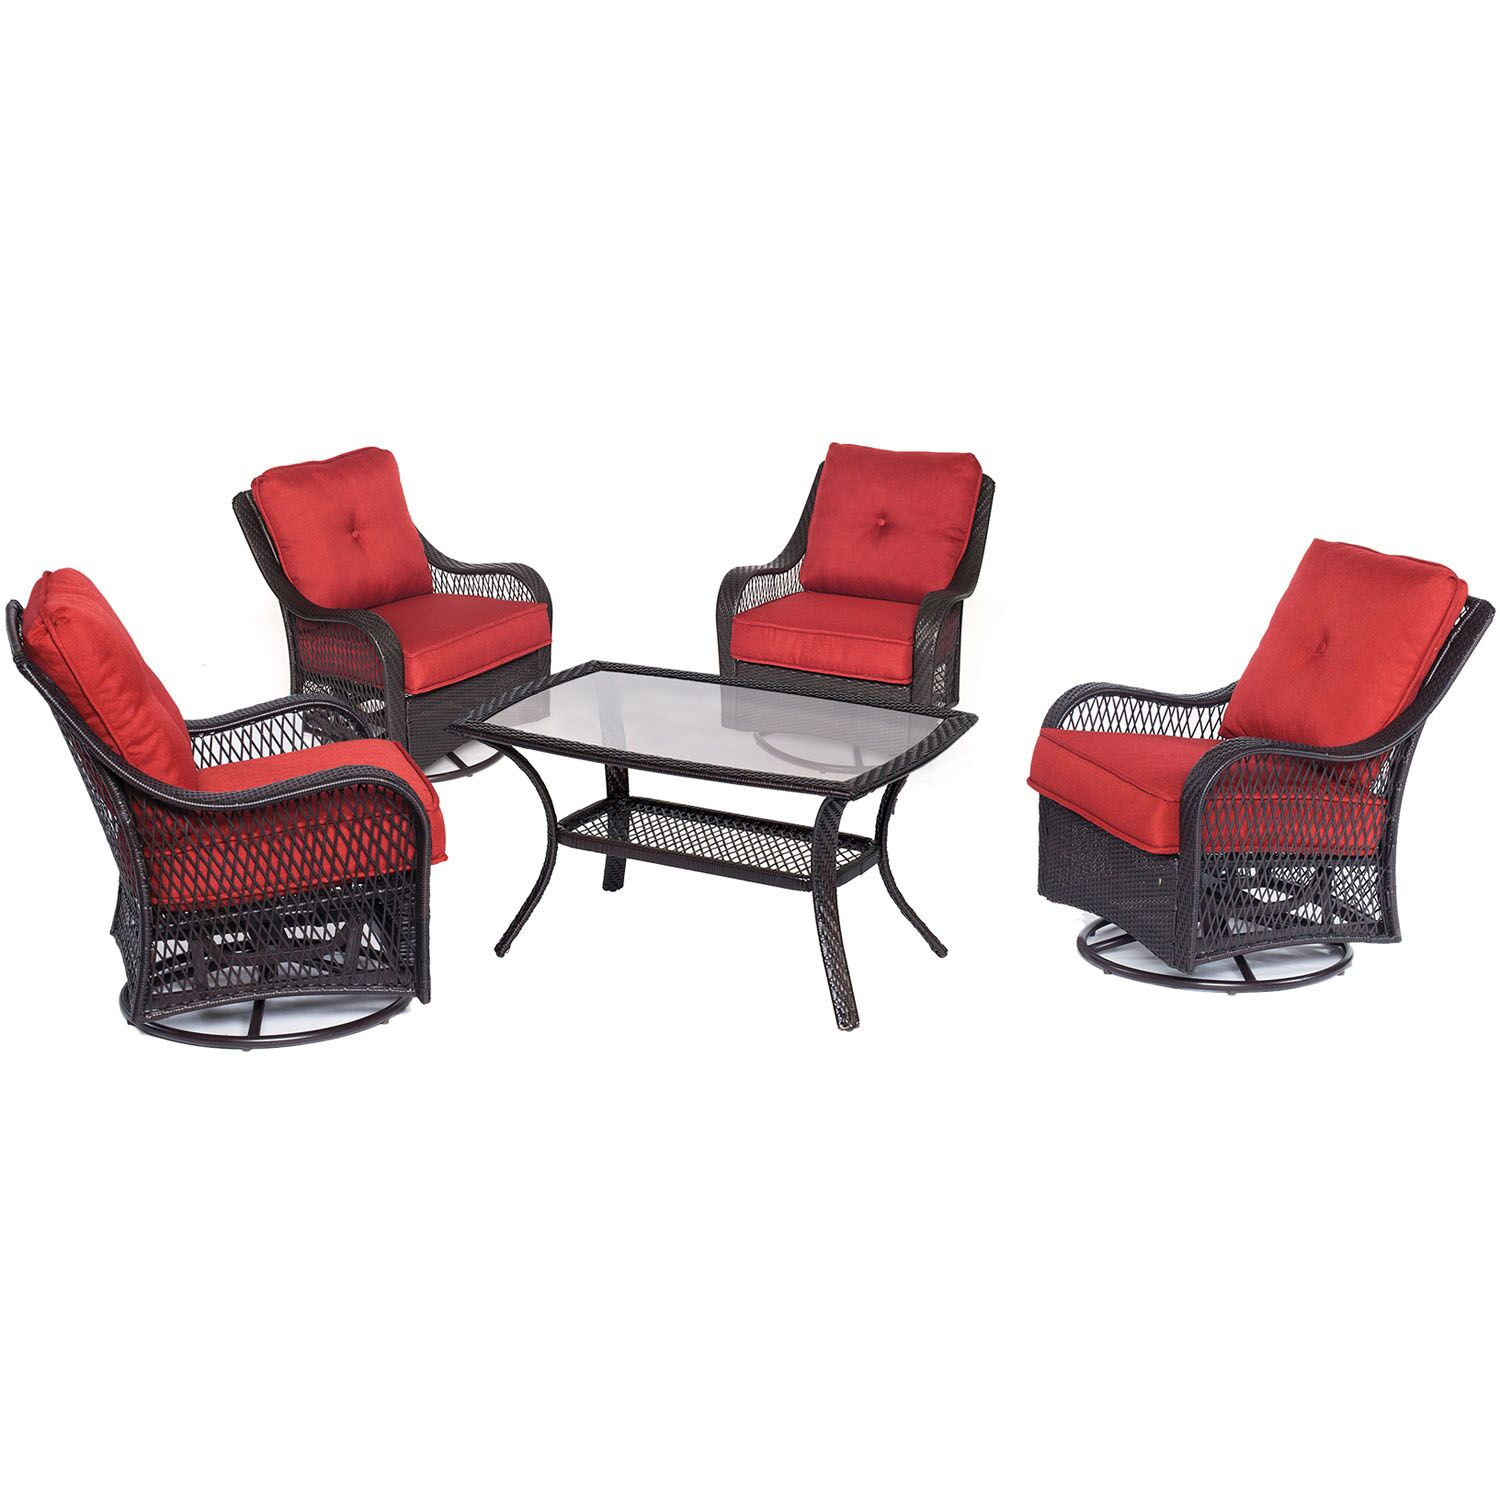 Innsbrook 5 Piece Conversation Seat with Cushions Fabric: Autumn Berry